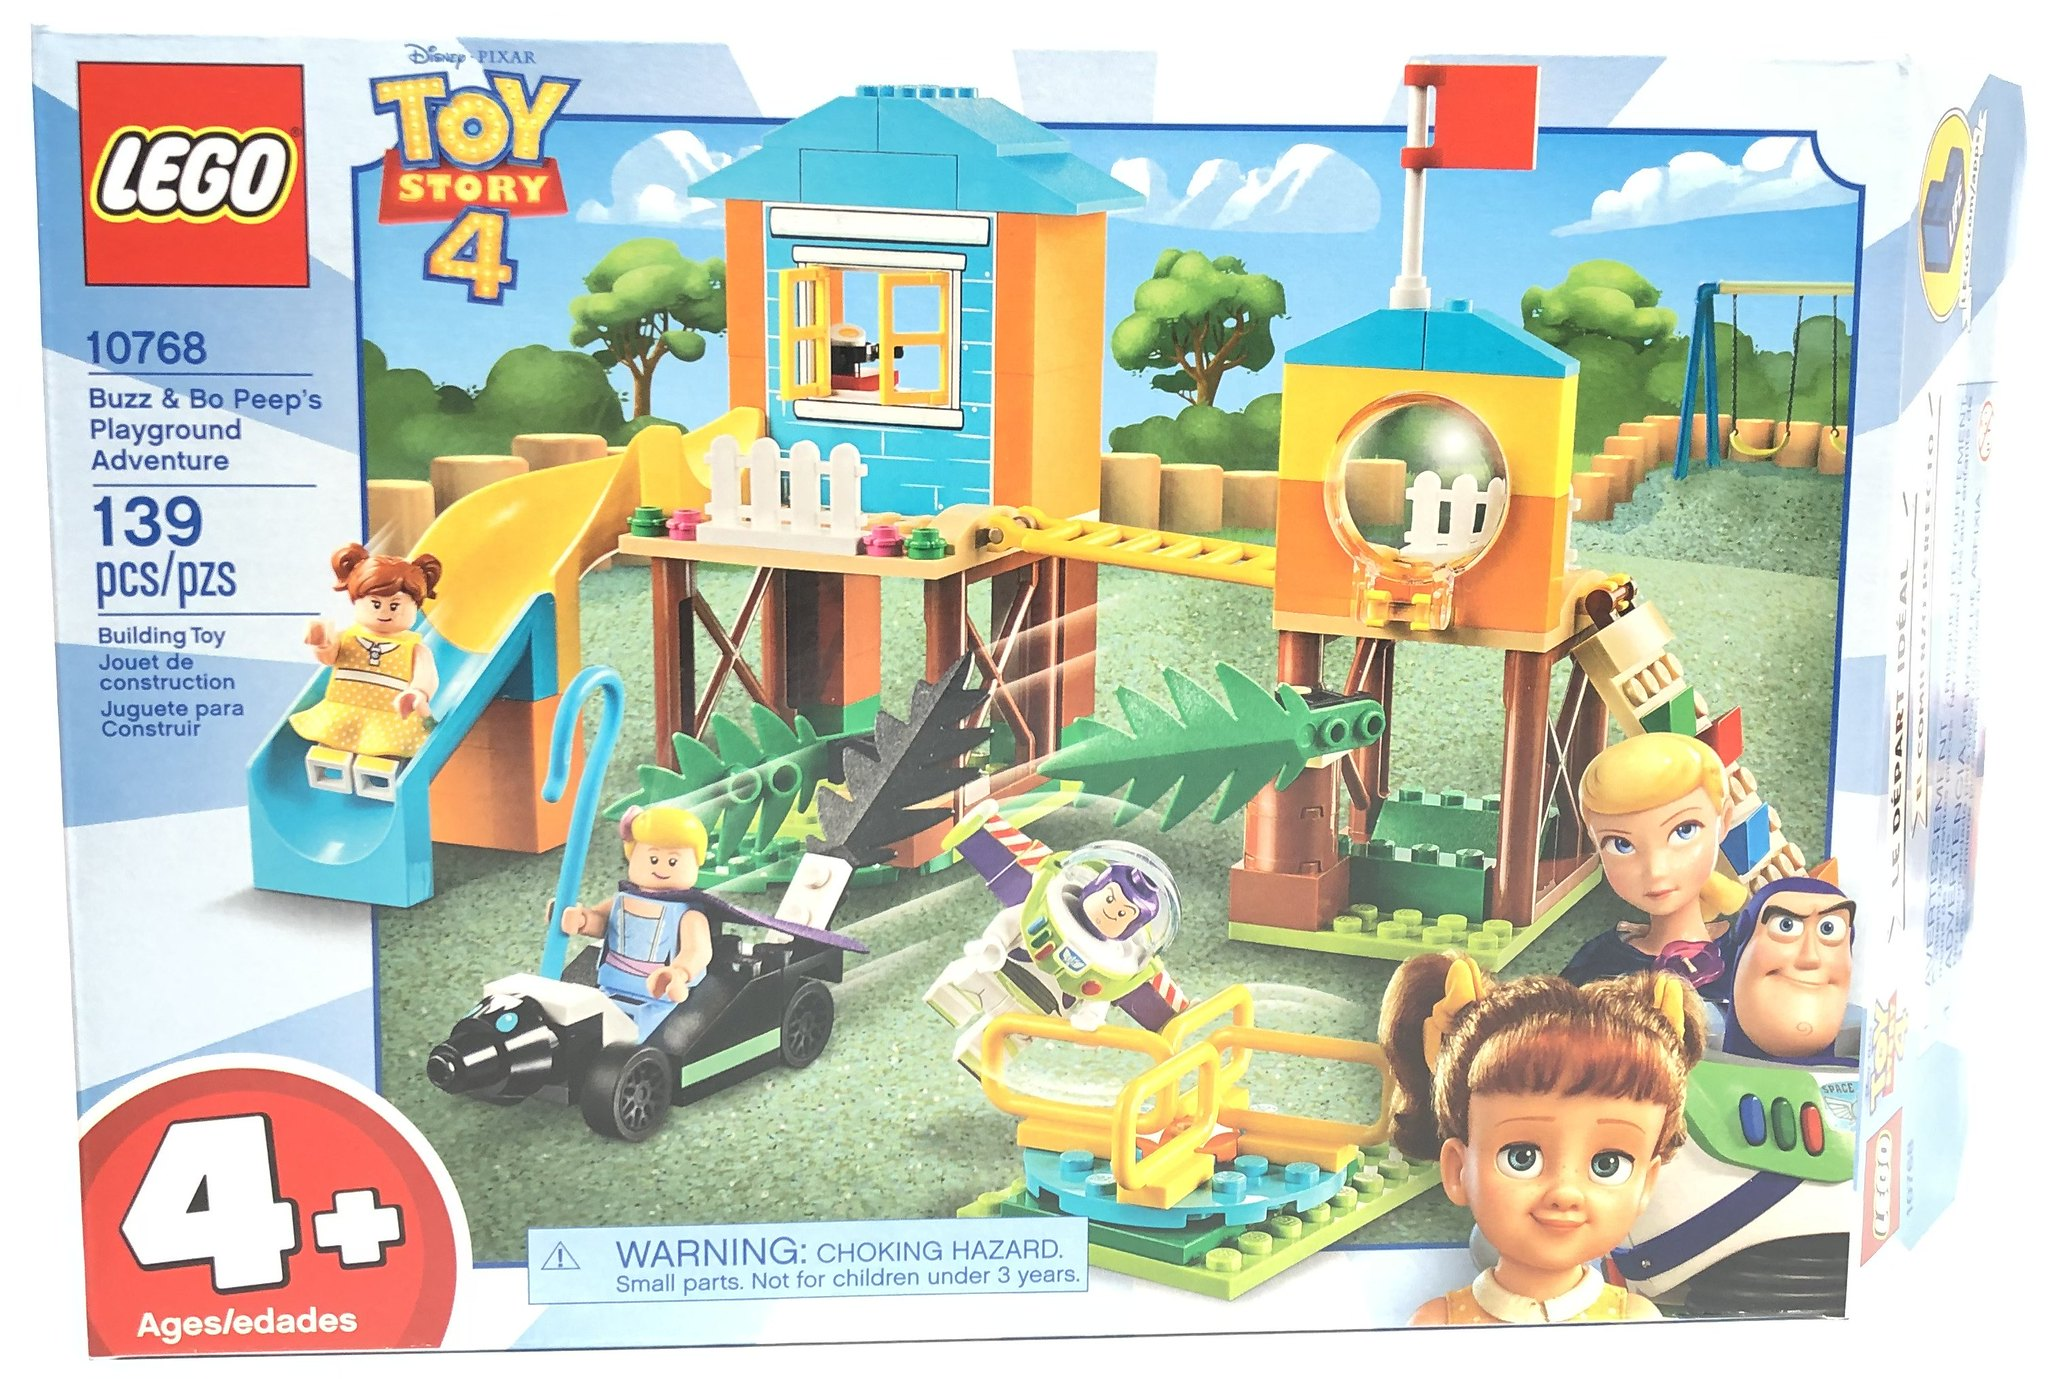 lego-toy-story-4-buzz-and-bo-peeps-playground-adventure-10768-box-2019 zusammengebaut.com